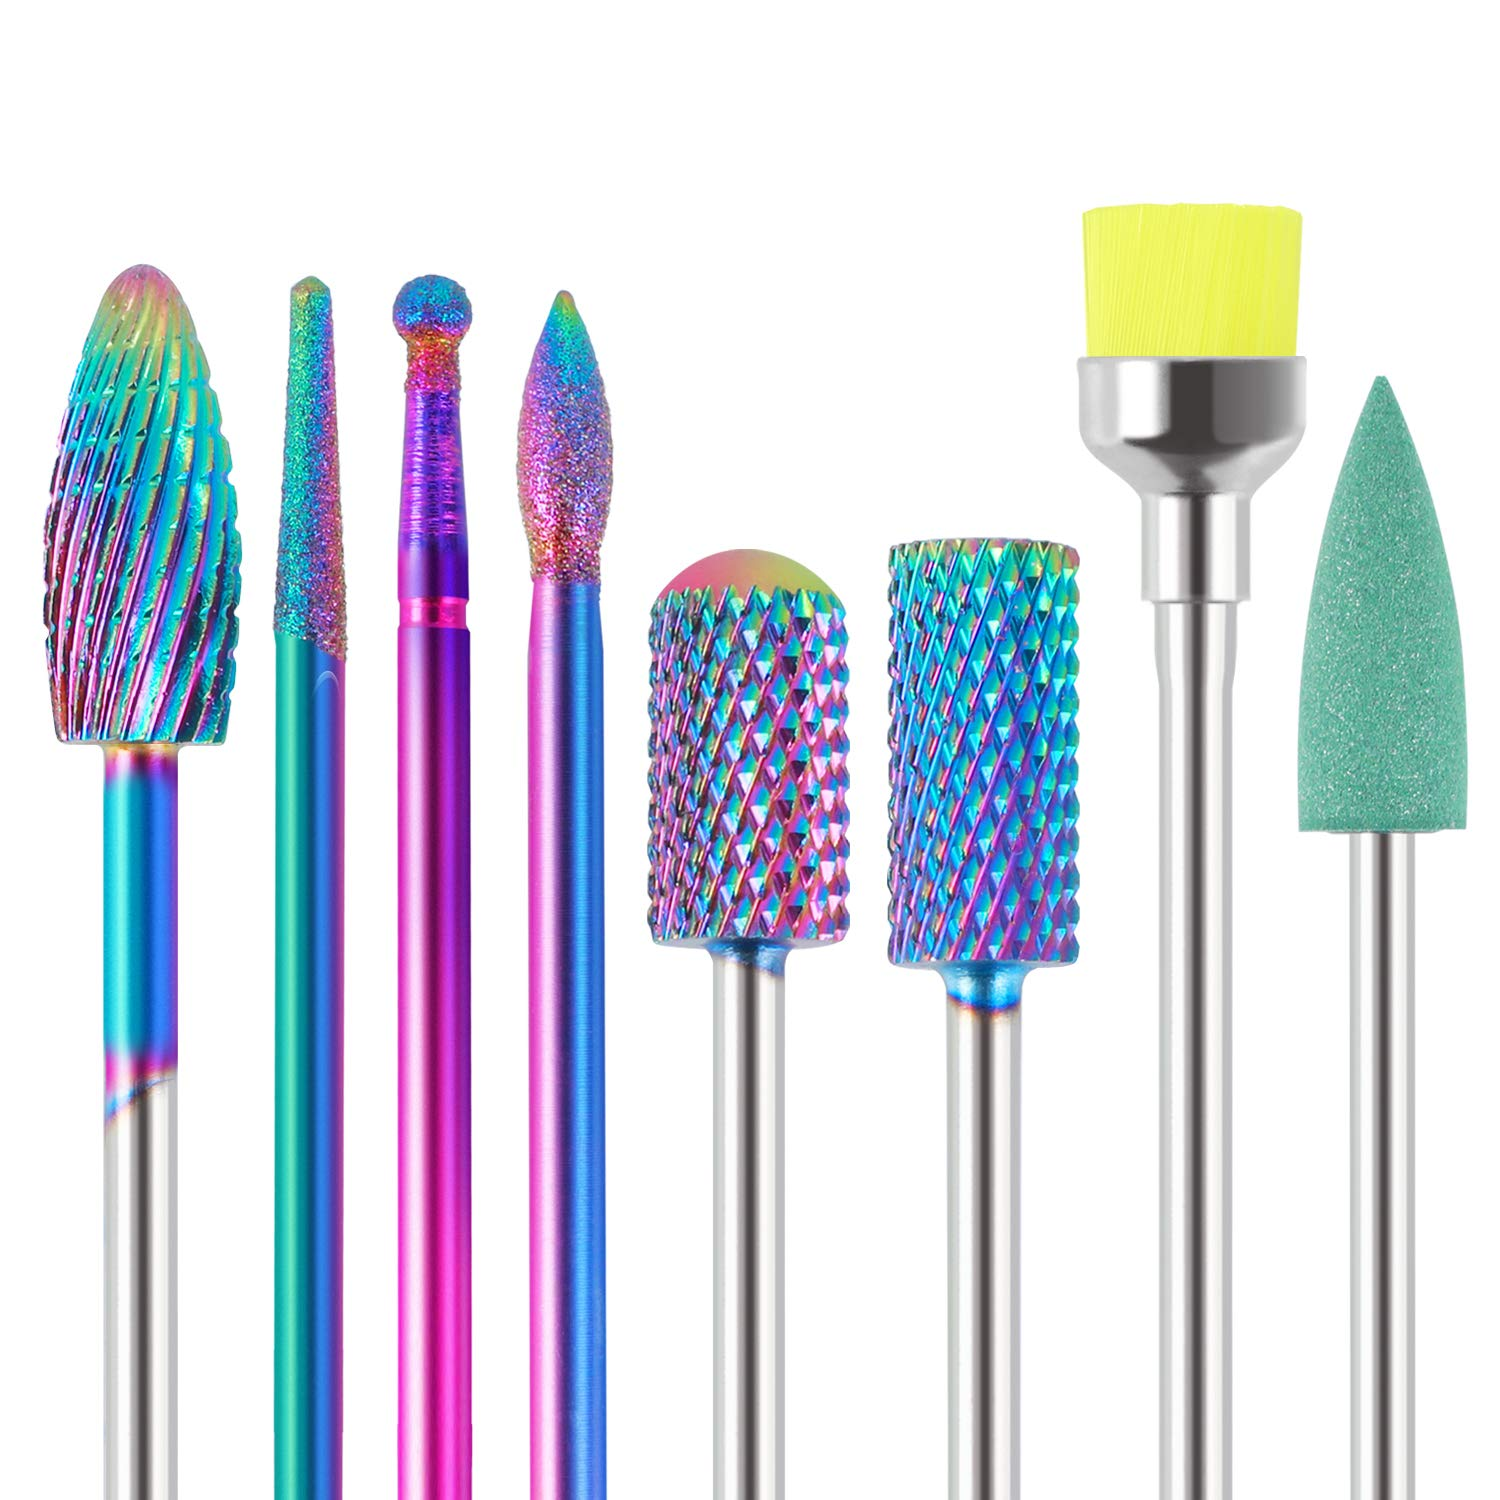 Max 79% OFF MAQUITA 8Pcs Nail Drill Bits Ranking integrated 1st place Set Carbide of Profes Tungsten Made